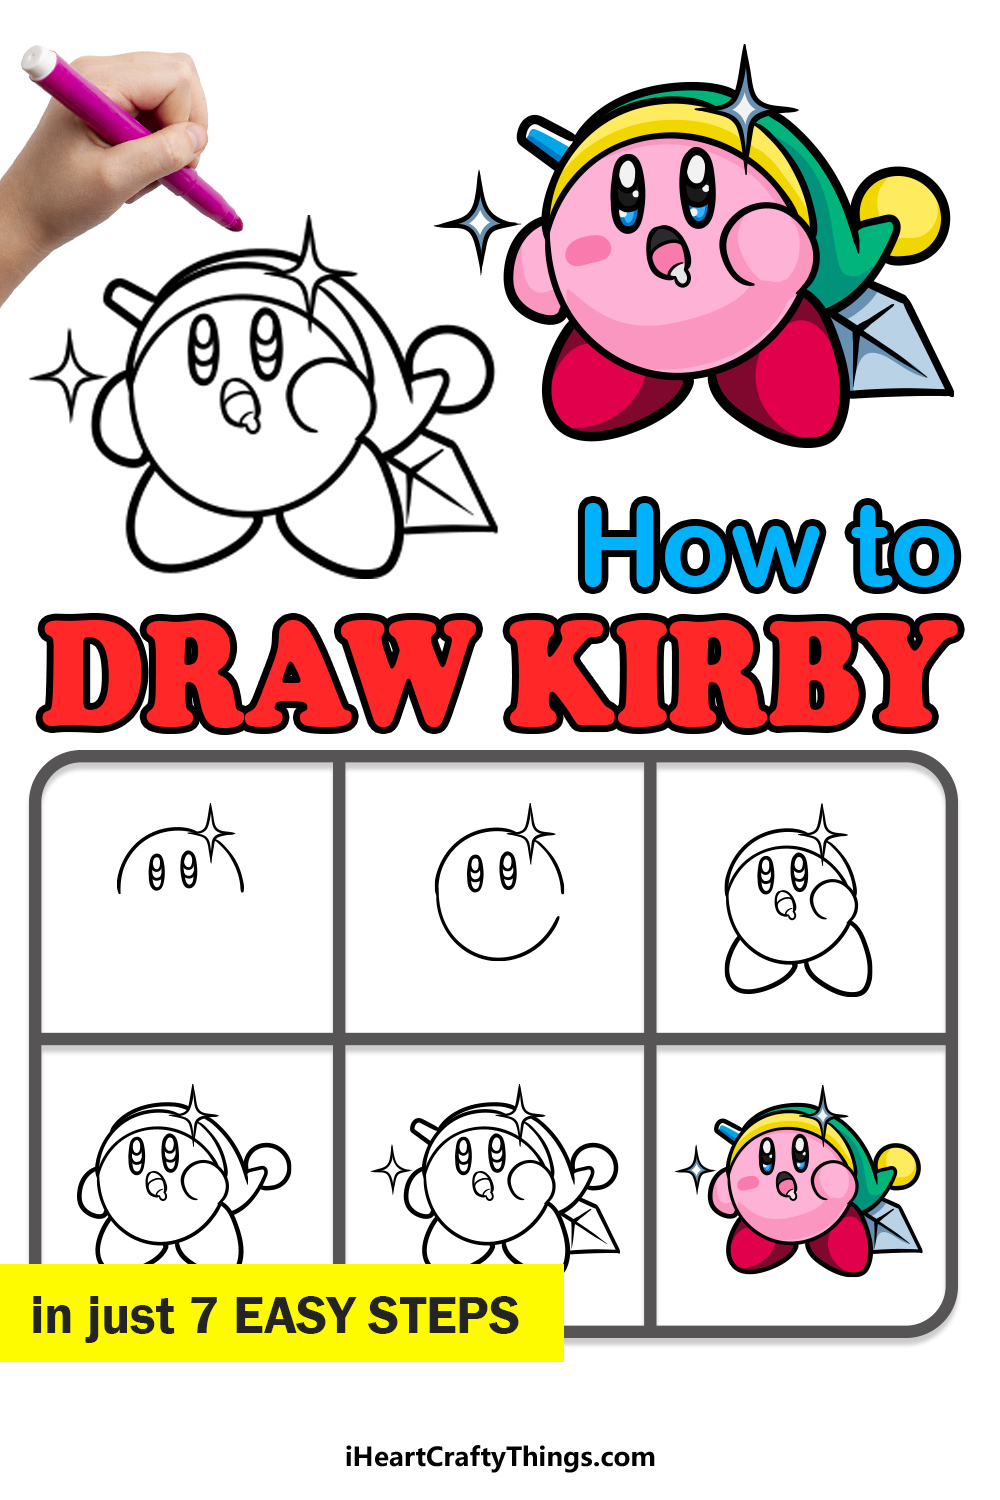 how to draw kirby in 7 easy steps